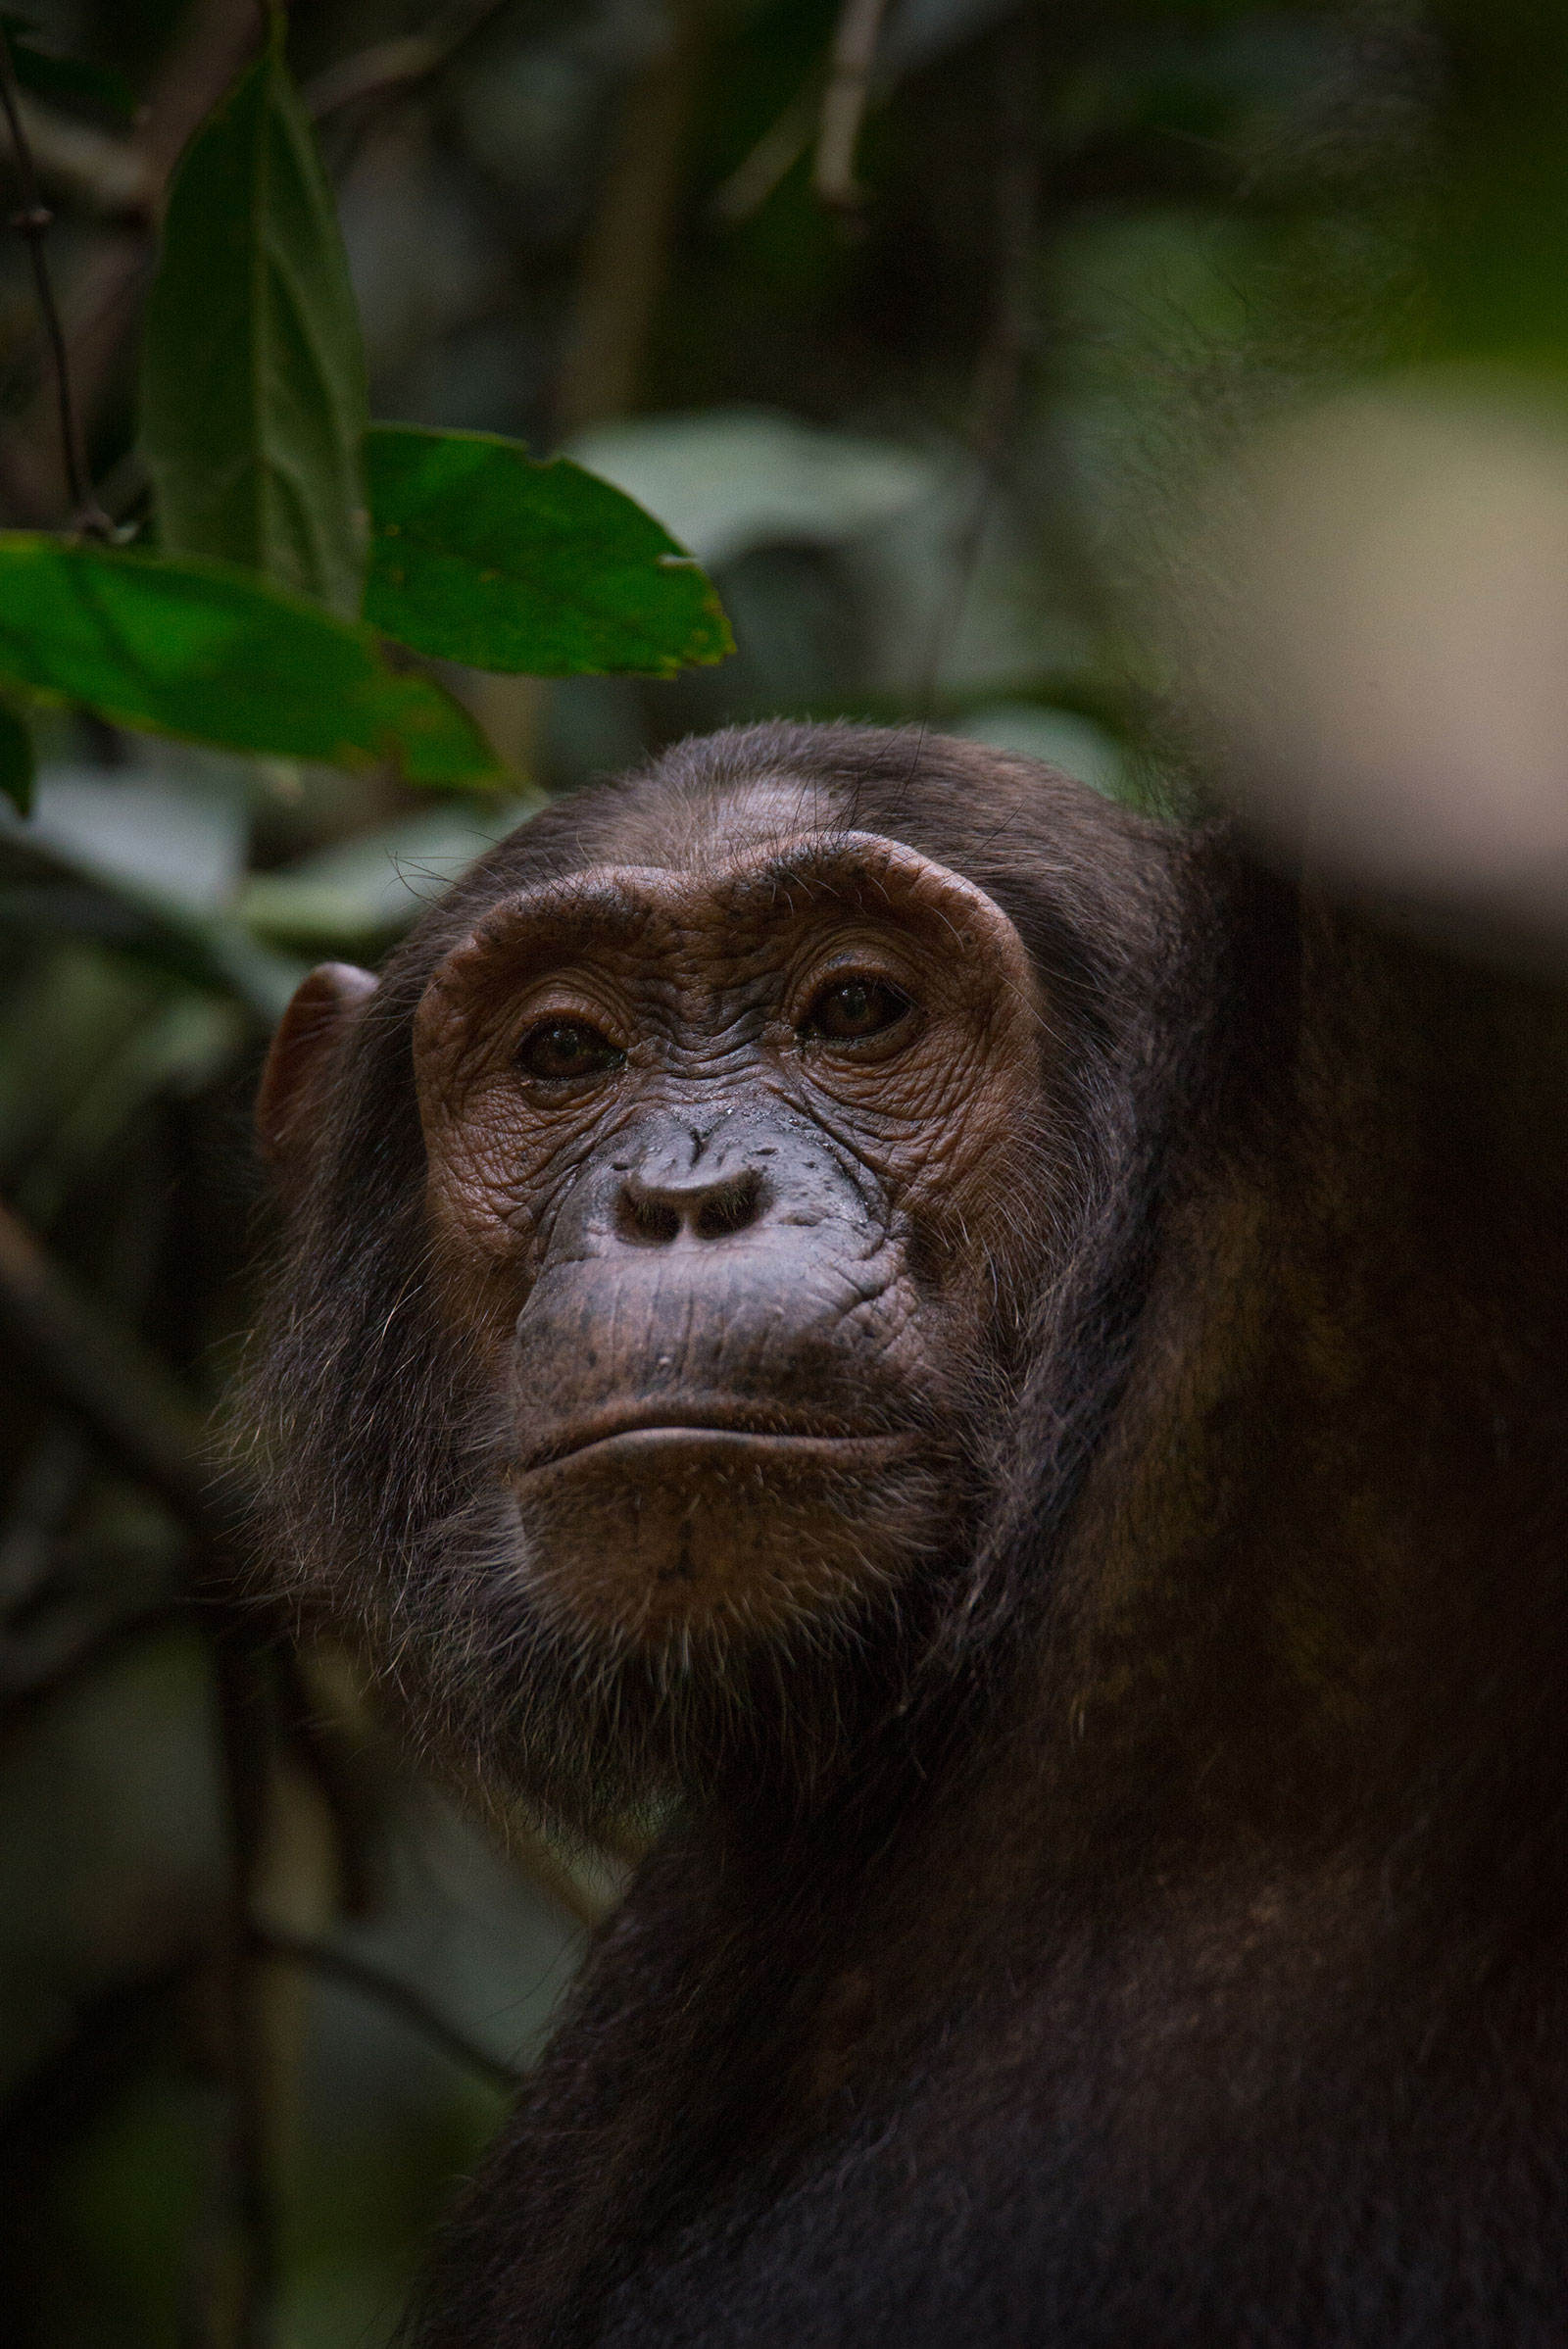 Chimpanzee Trekking, Going Chimpanzee Trekking? Here are 3 Facts About Chimps.